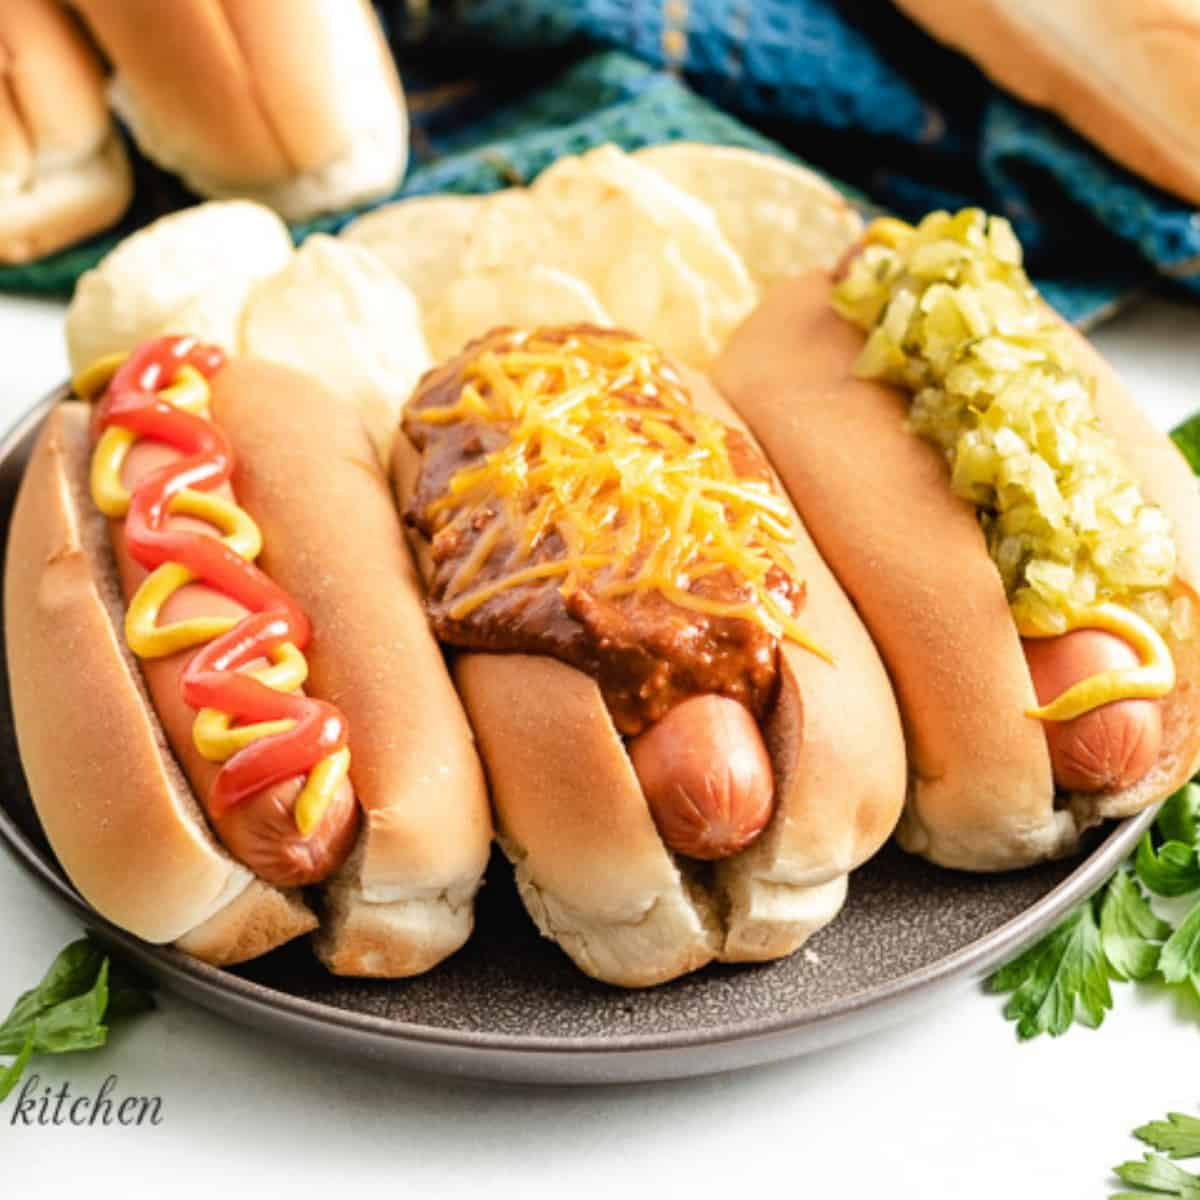 The finished Instant Pot hot dogs with condiments.